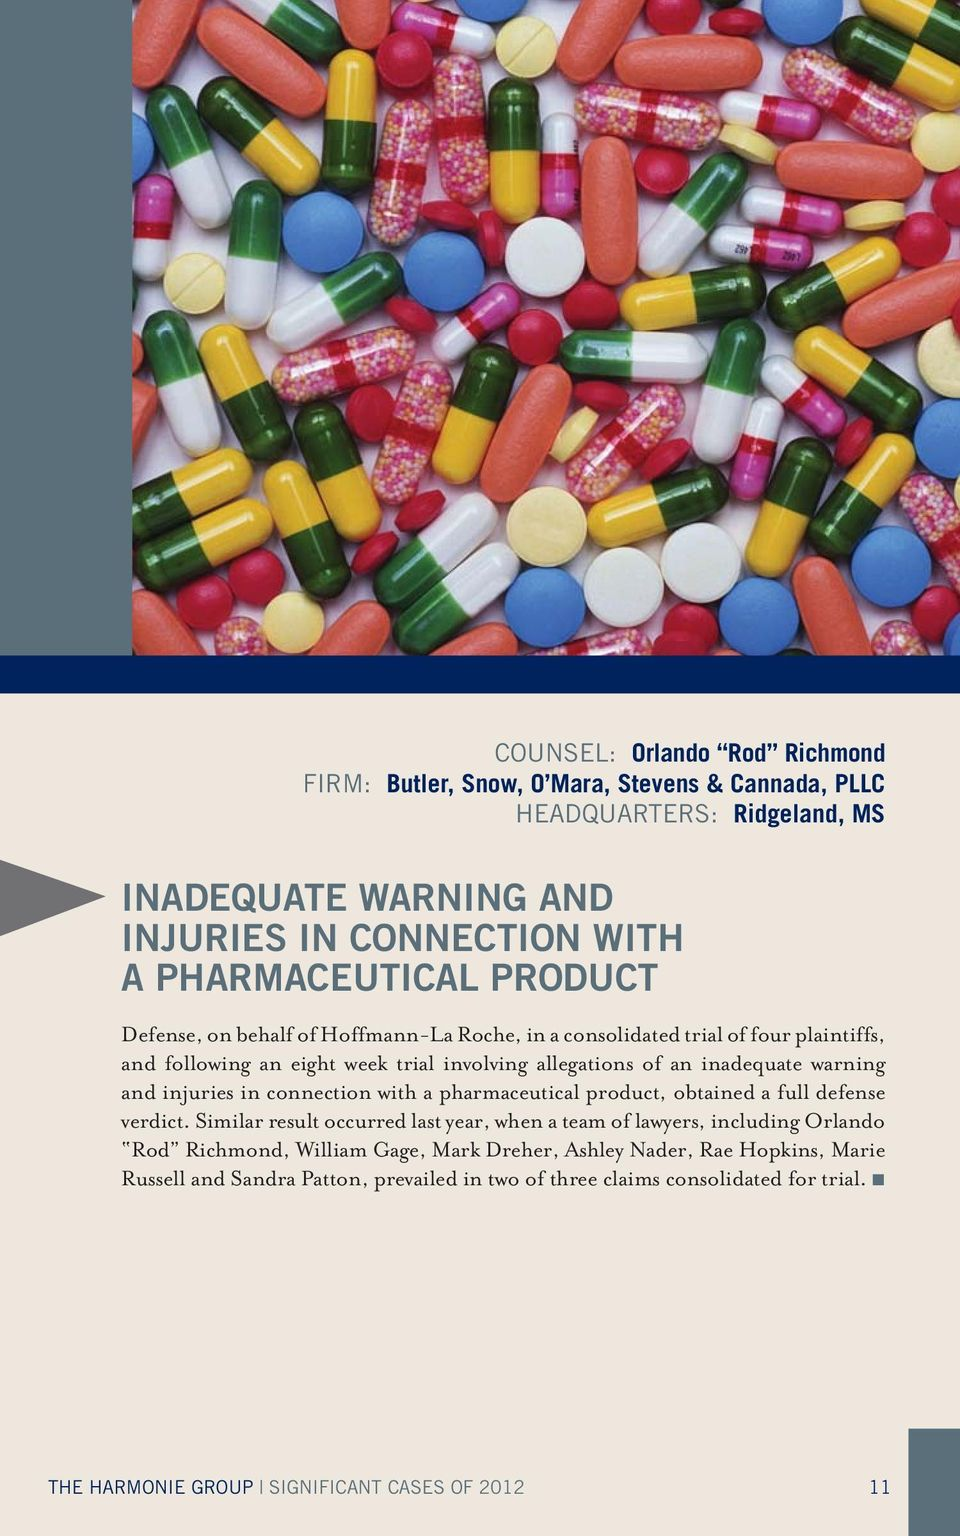 injuries in connection with a pharmaceutical product, obtained a full defense verdict.